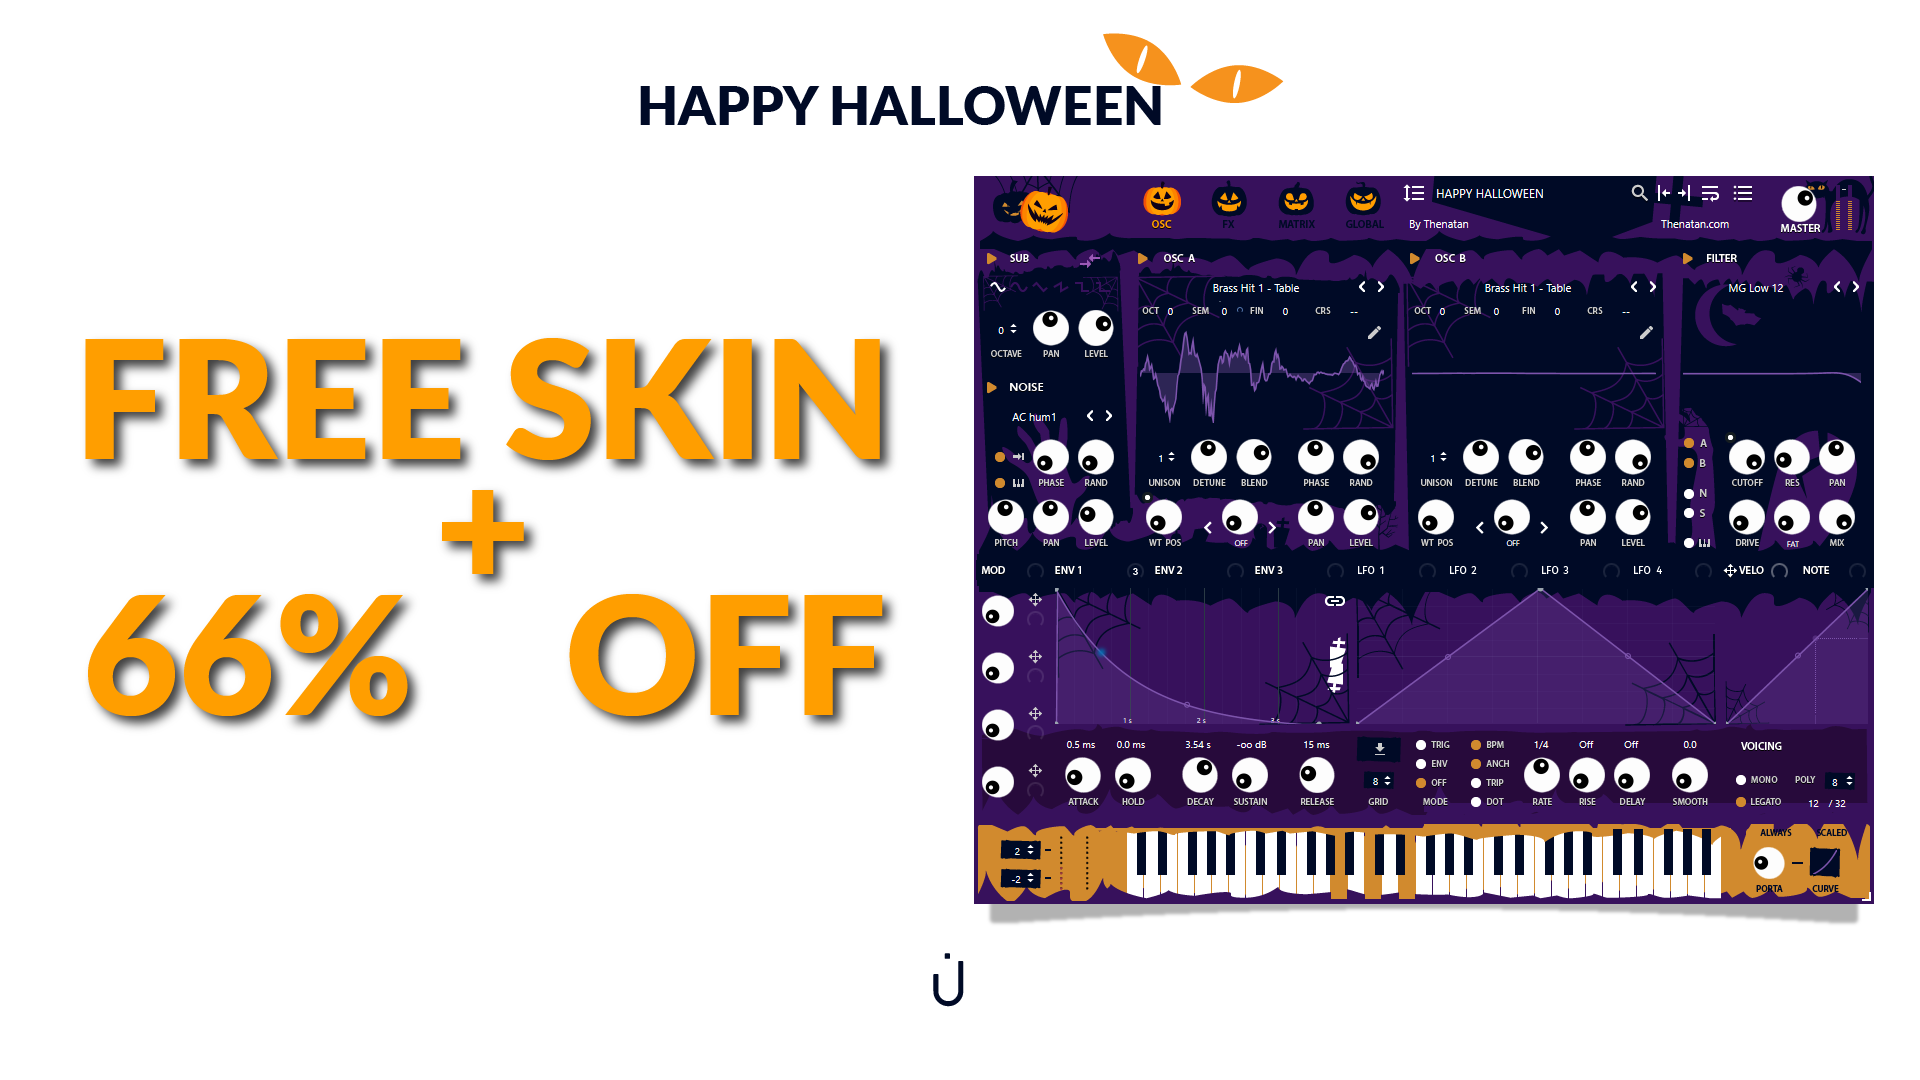 KVR: #KVRDeal Thenatan Halloween Offer 2018 - Up To 66% Off